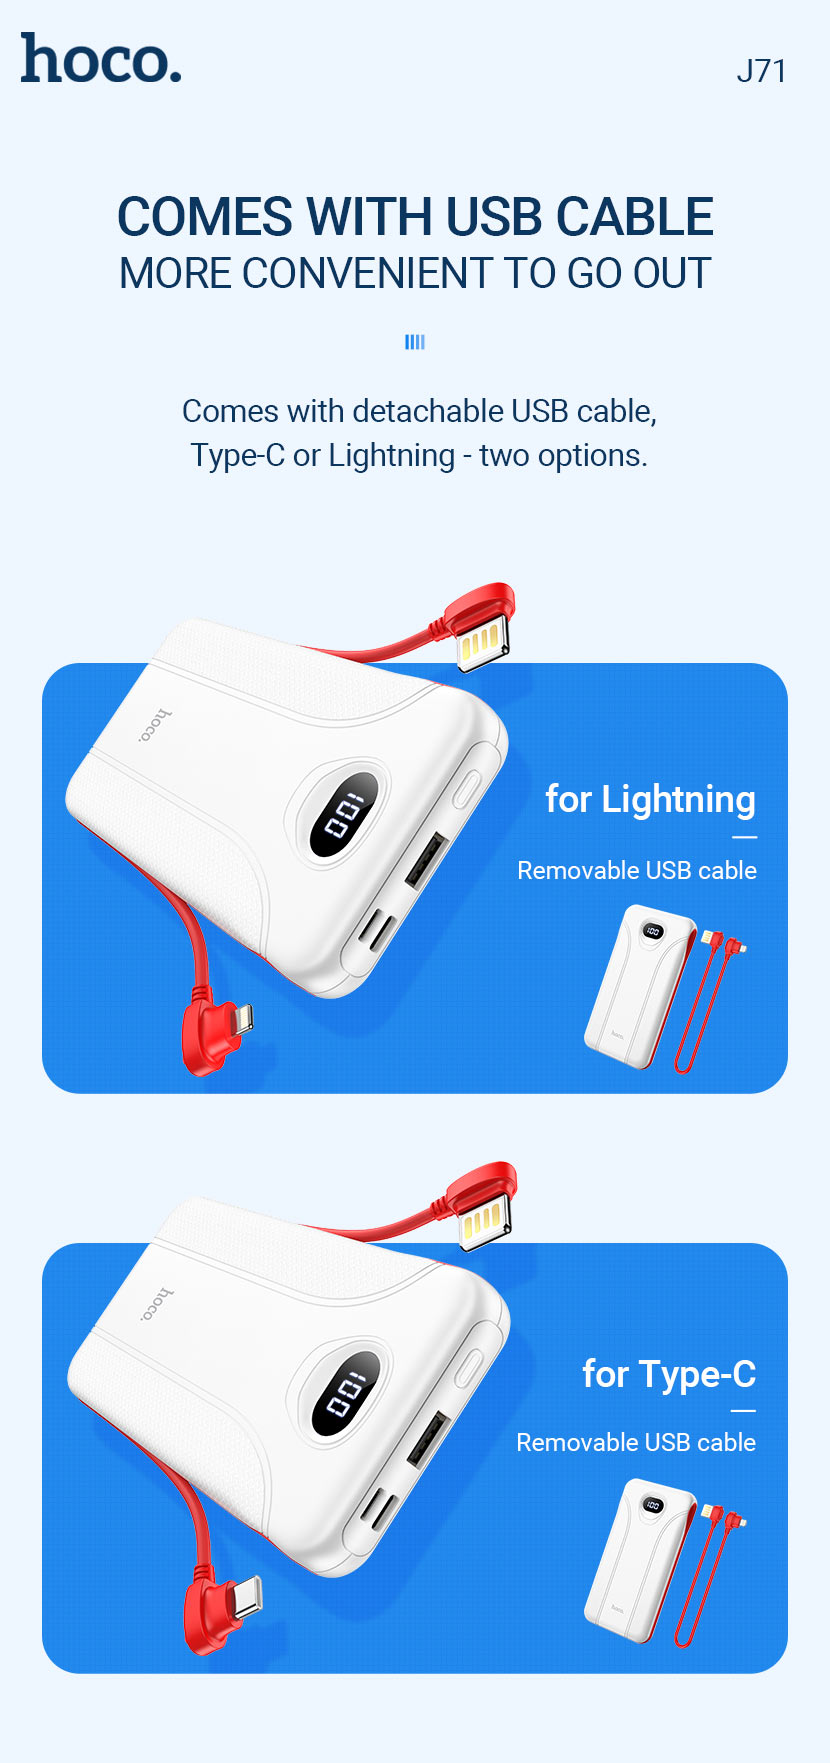 hoco news j71 borealis power bank 10000mah with cable en